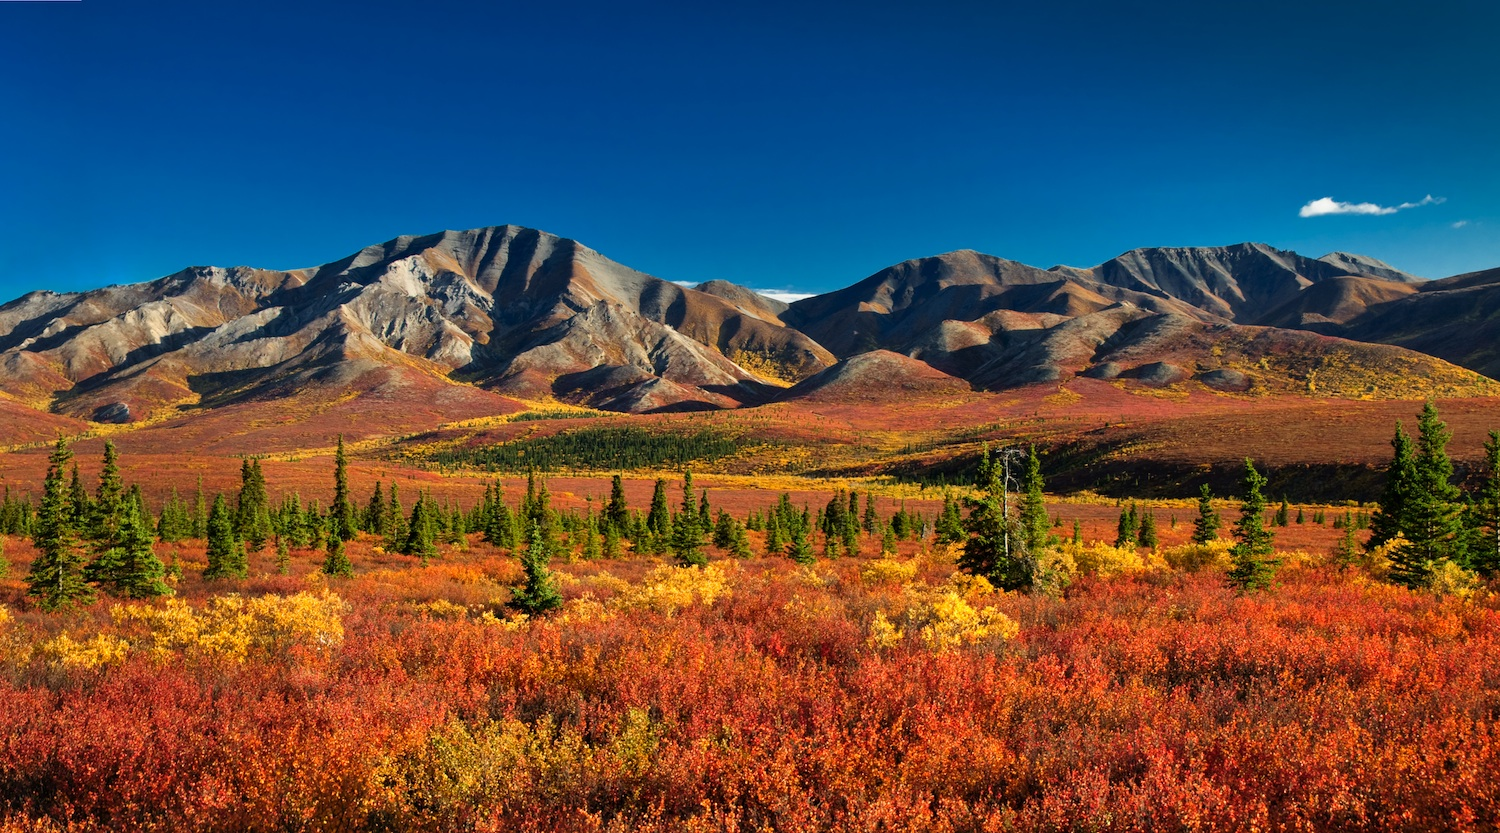 denali national park senior singles National park tours are a great adventure and bargain natural wonders, spellbinding sights, and outdoor adventures are just a hop, skip, and a flight away when you take advantage of a national park tour through aaa travel.